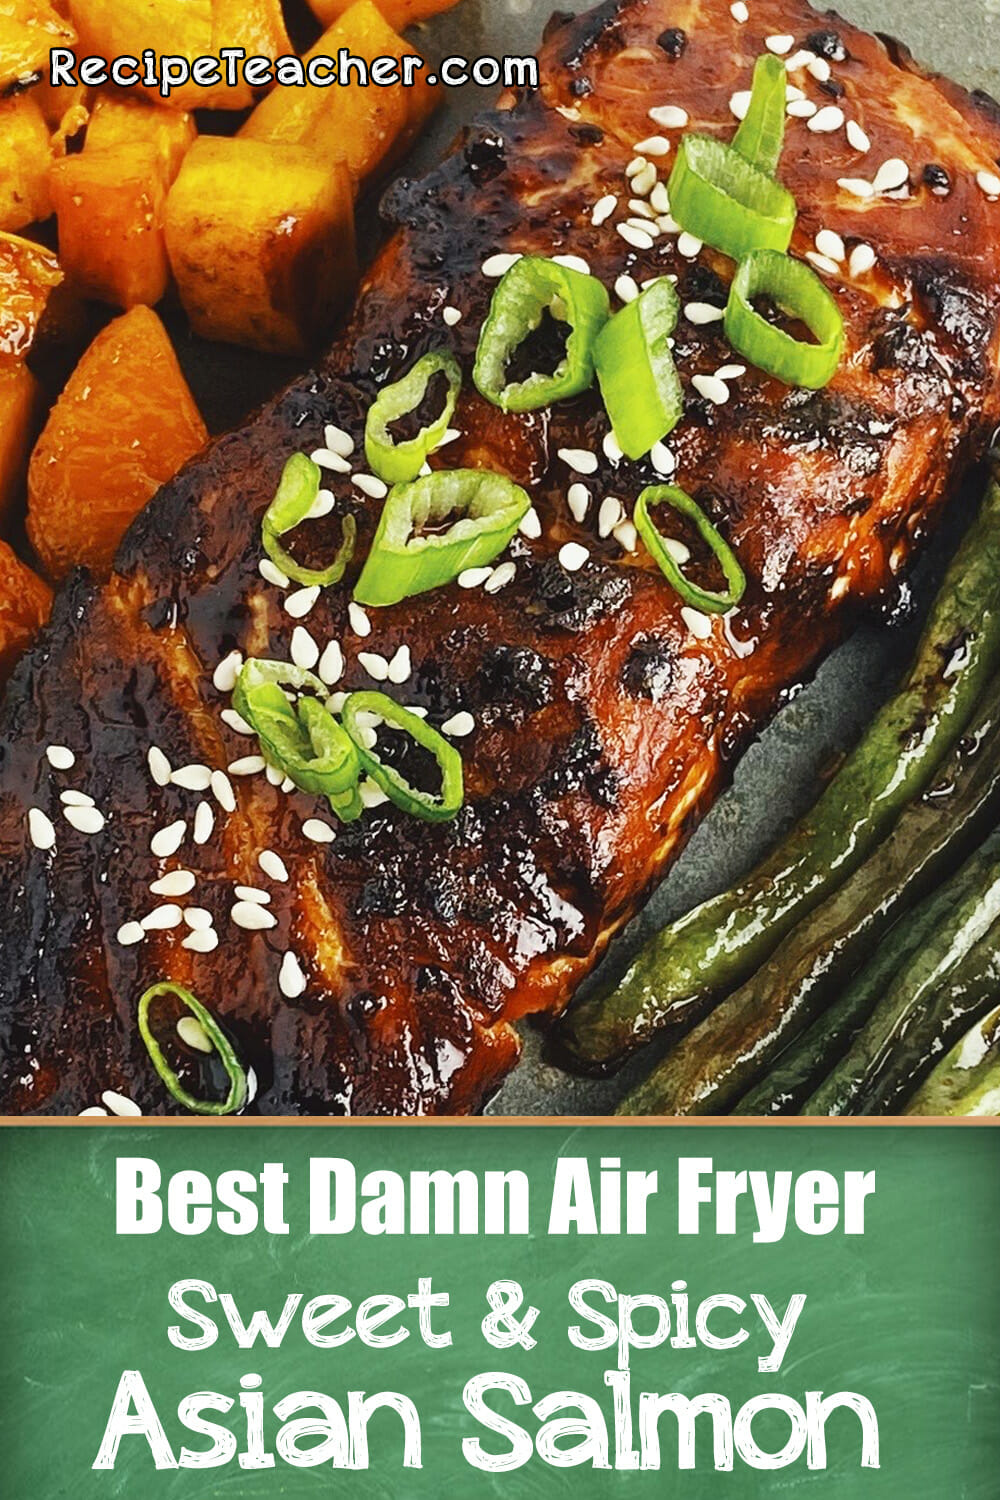 Recipe for Asian air fryer salmon